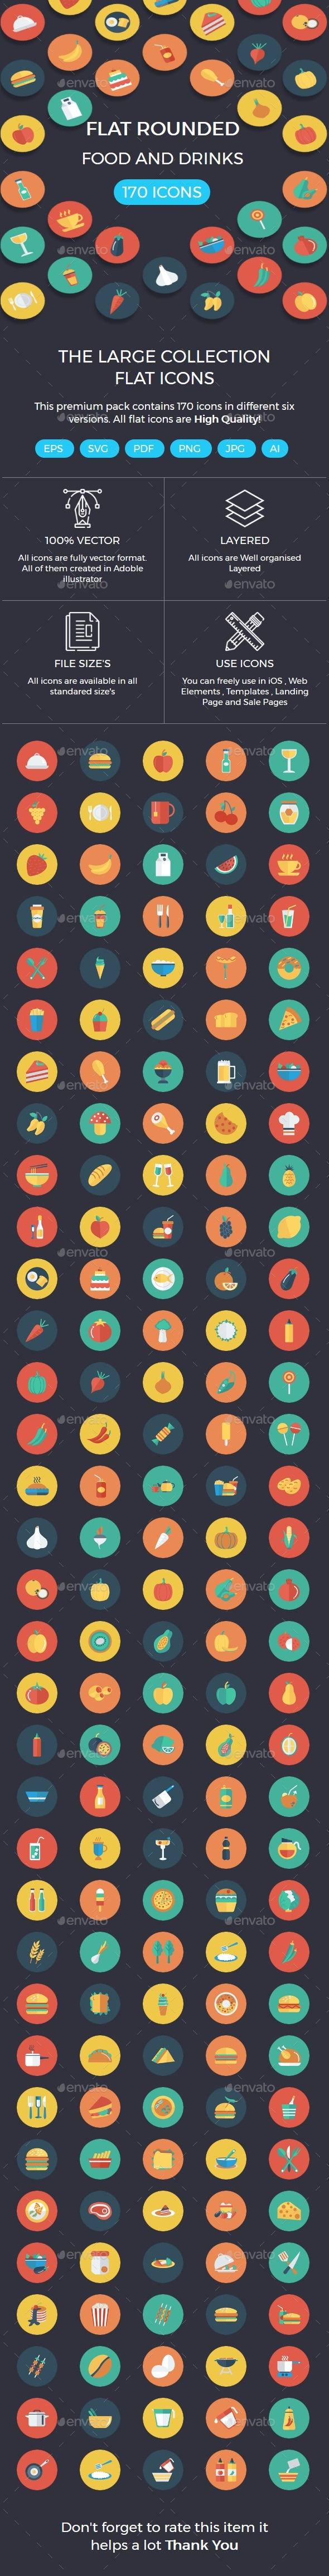 Food and Drinks Flat Circle Icons - Icons